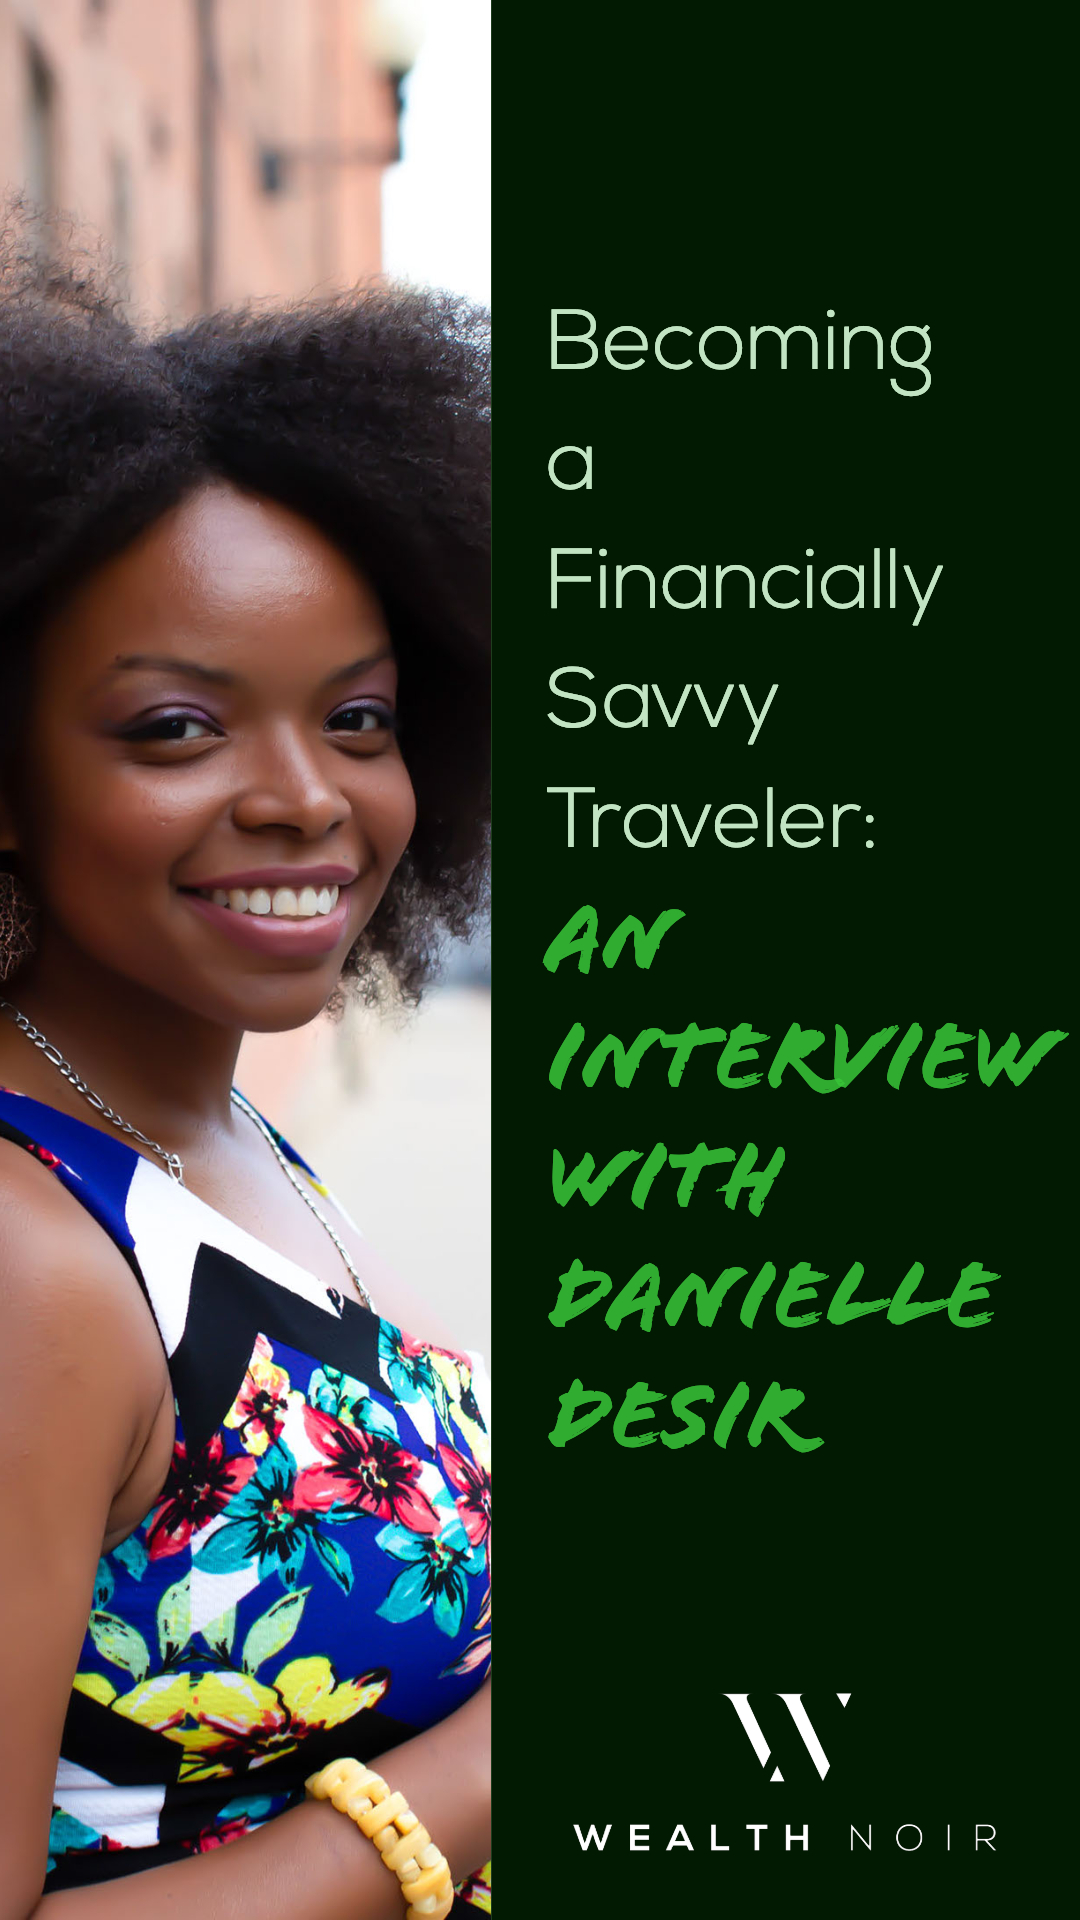 How to be a Financially Savvy Traveler: An Interview with Danielle Desir